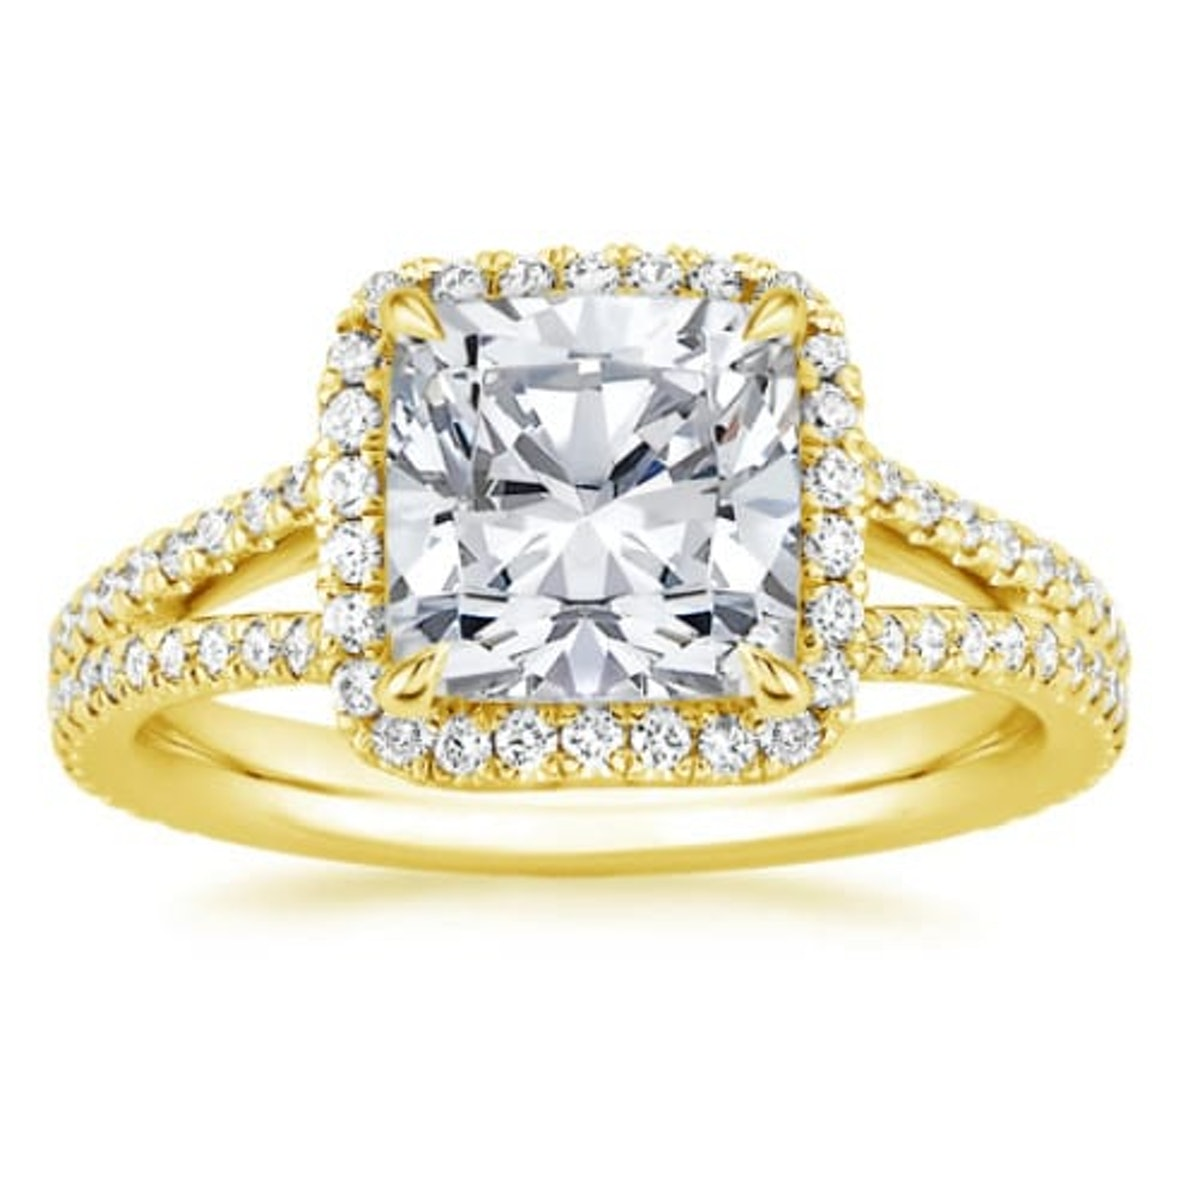 Fortuna Diamond Engagement Ring in 18K Gold from Brilliant Earth.